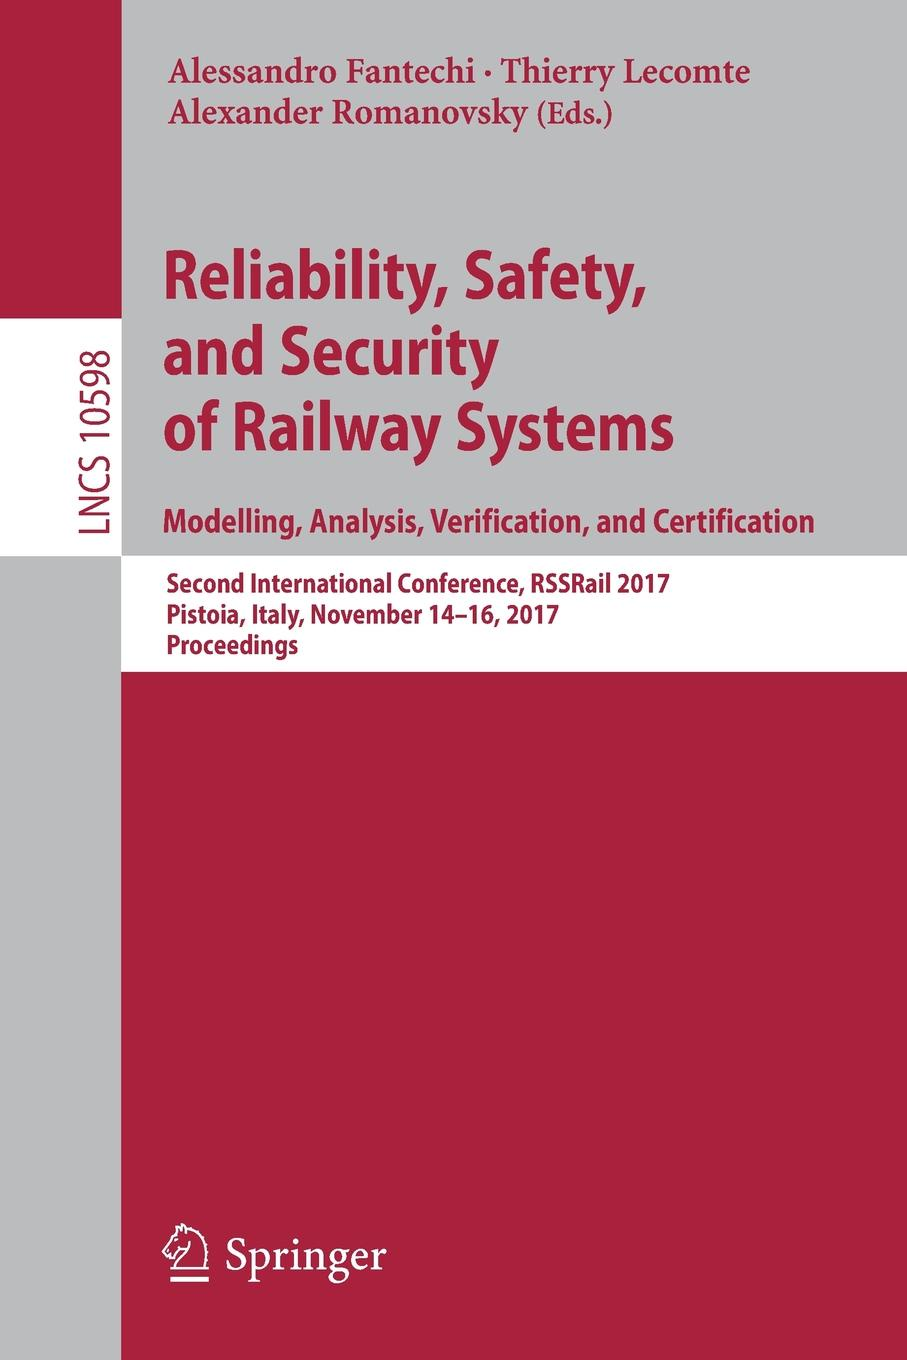 Reliability, Safety, and Security of Railway Systems. Modelling, Analysis, Verification, and Certification. Second International Conference, RSSRail 2017, Pistoia, Italy, November 14-16, 2017, Proceedings